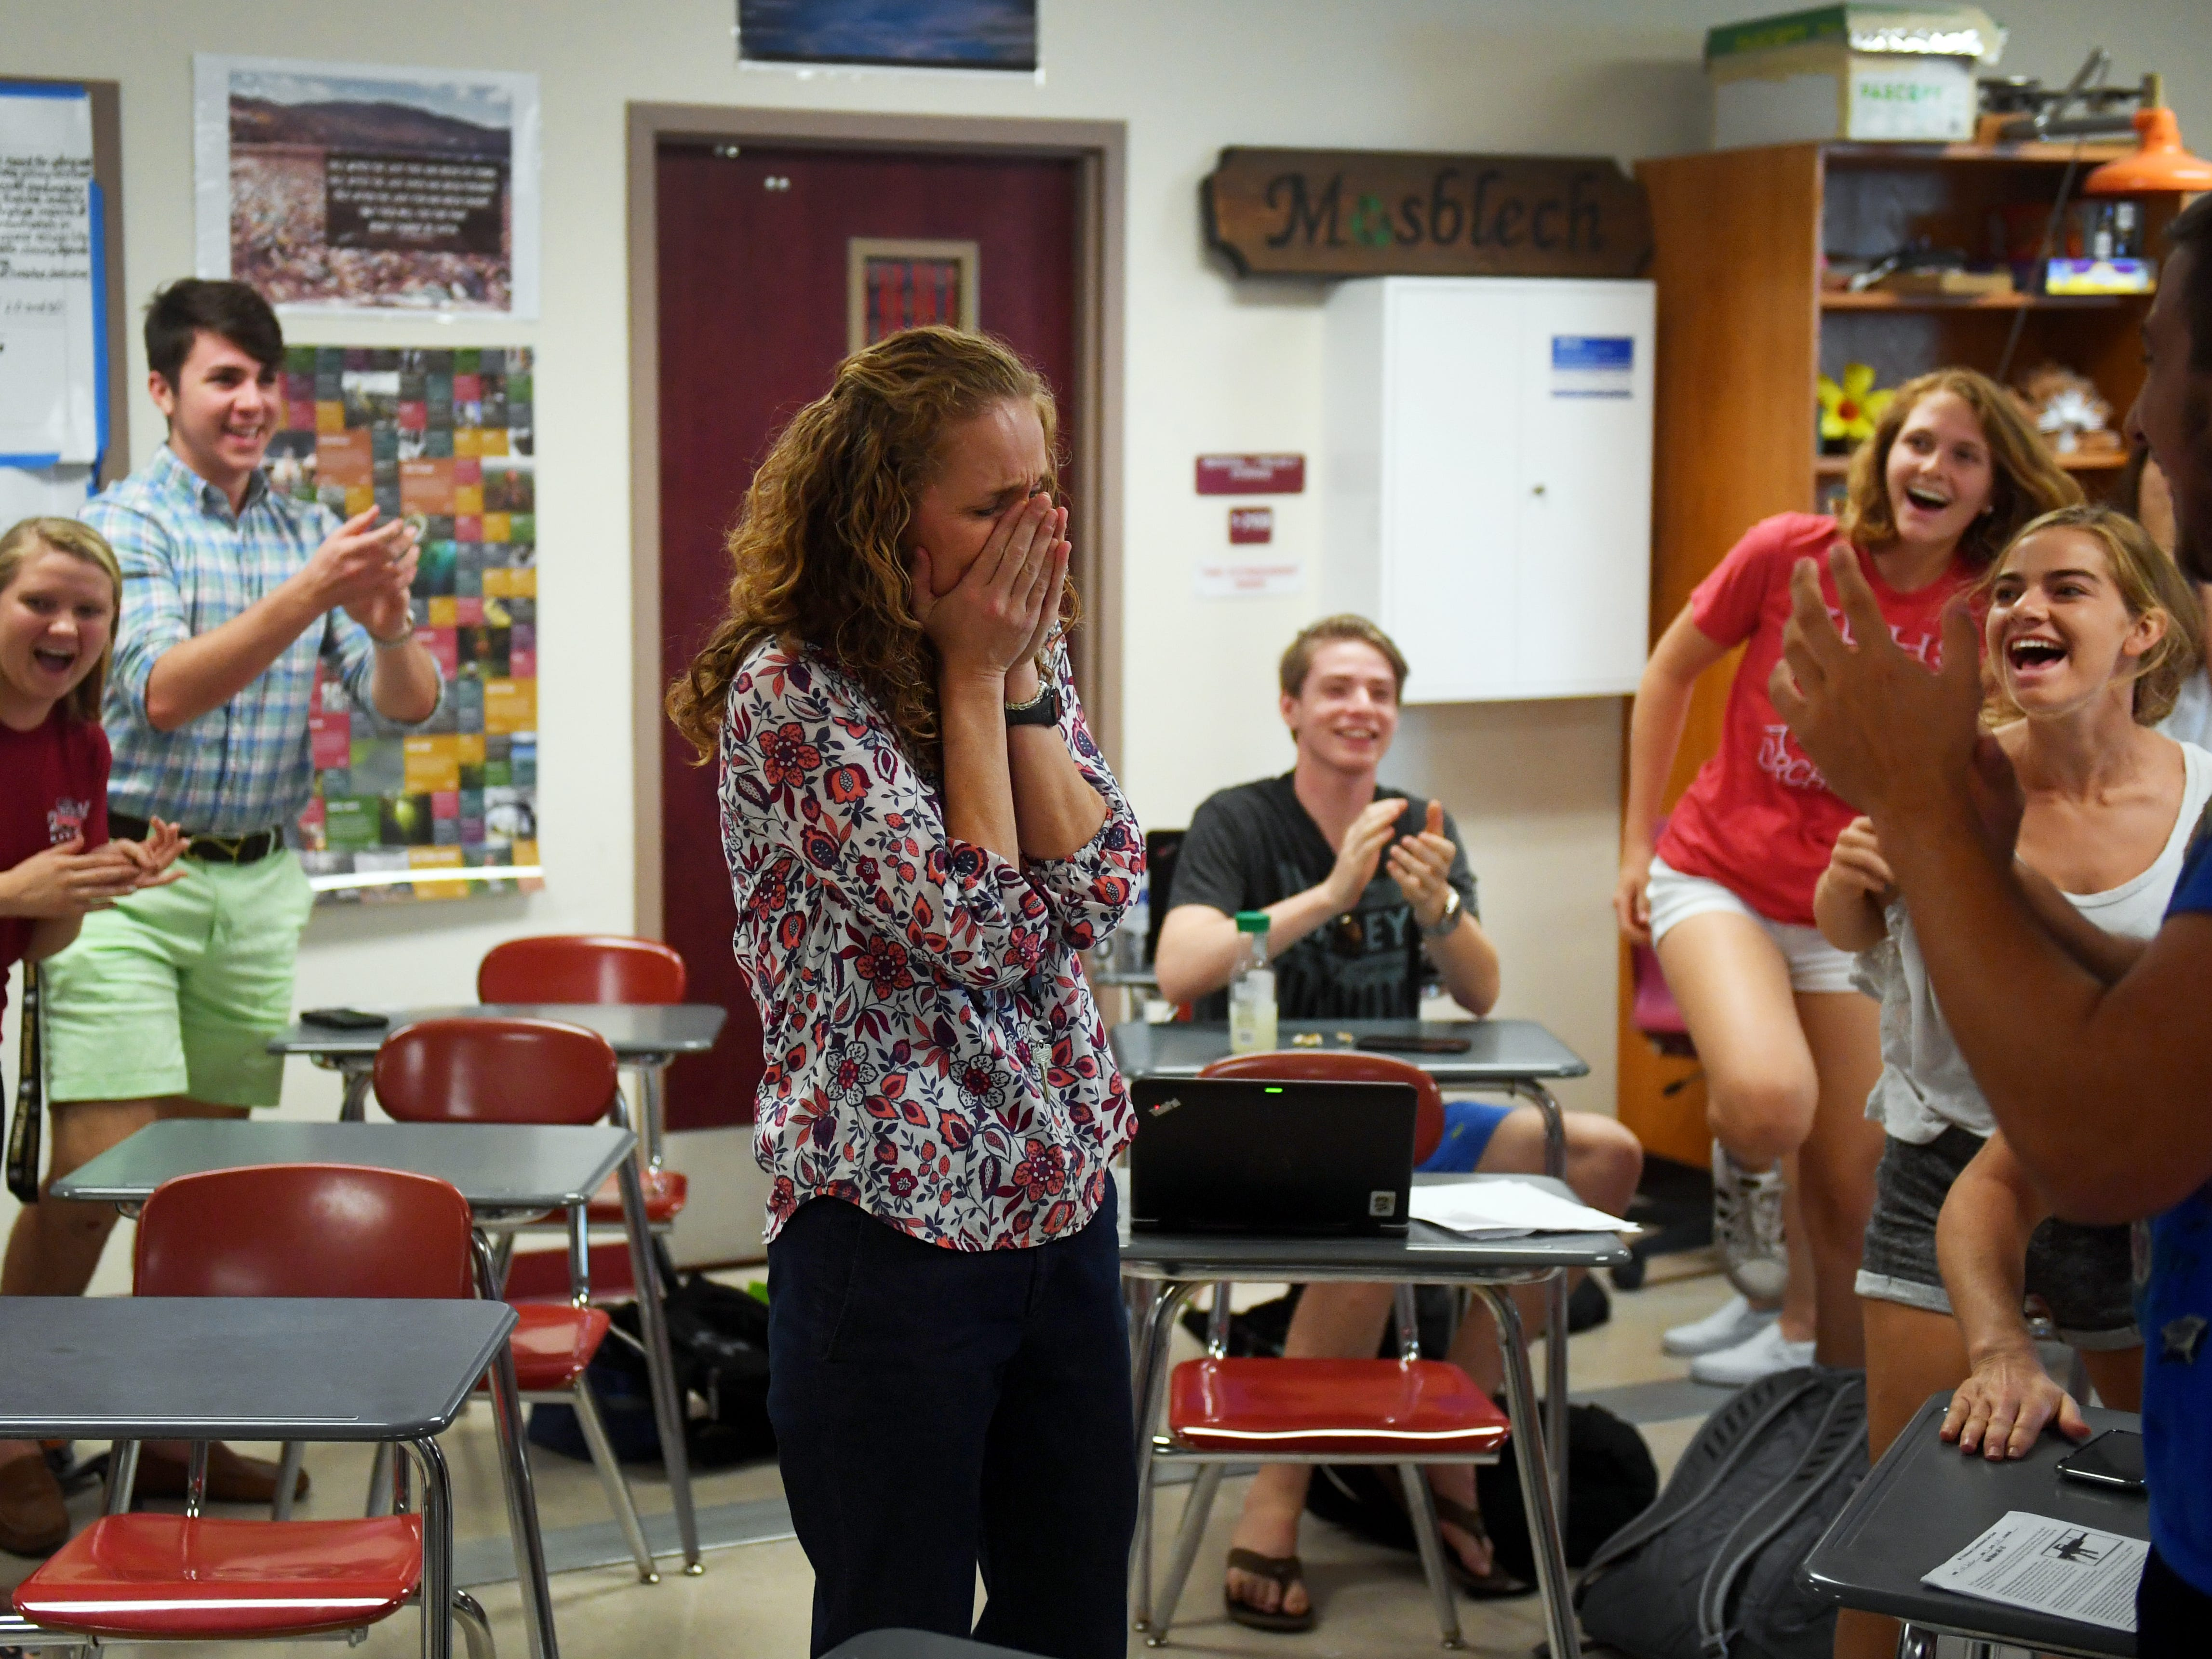 "As her students cheer around her, Dr. Nikki Mosblech, a science teacher at Vero Beach High School, is surprised by staff members from the Florida Department of Education as she is named one of five finalists for the 2020 Florida Teacher of the Year on Tuesday, May 7, 2019. ""It's overwhelming at first,"" Mosblech said. ""It's a lot to be recognized in this way for something that you would come in and do on a regular basis. It's very humbling to think that you could represent educators from around the state."" The announcement of the Teacher of the Year will be made on July 18."